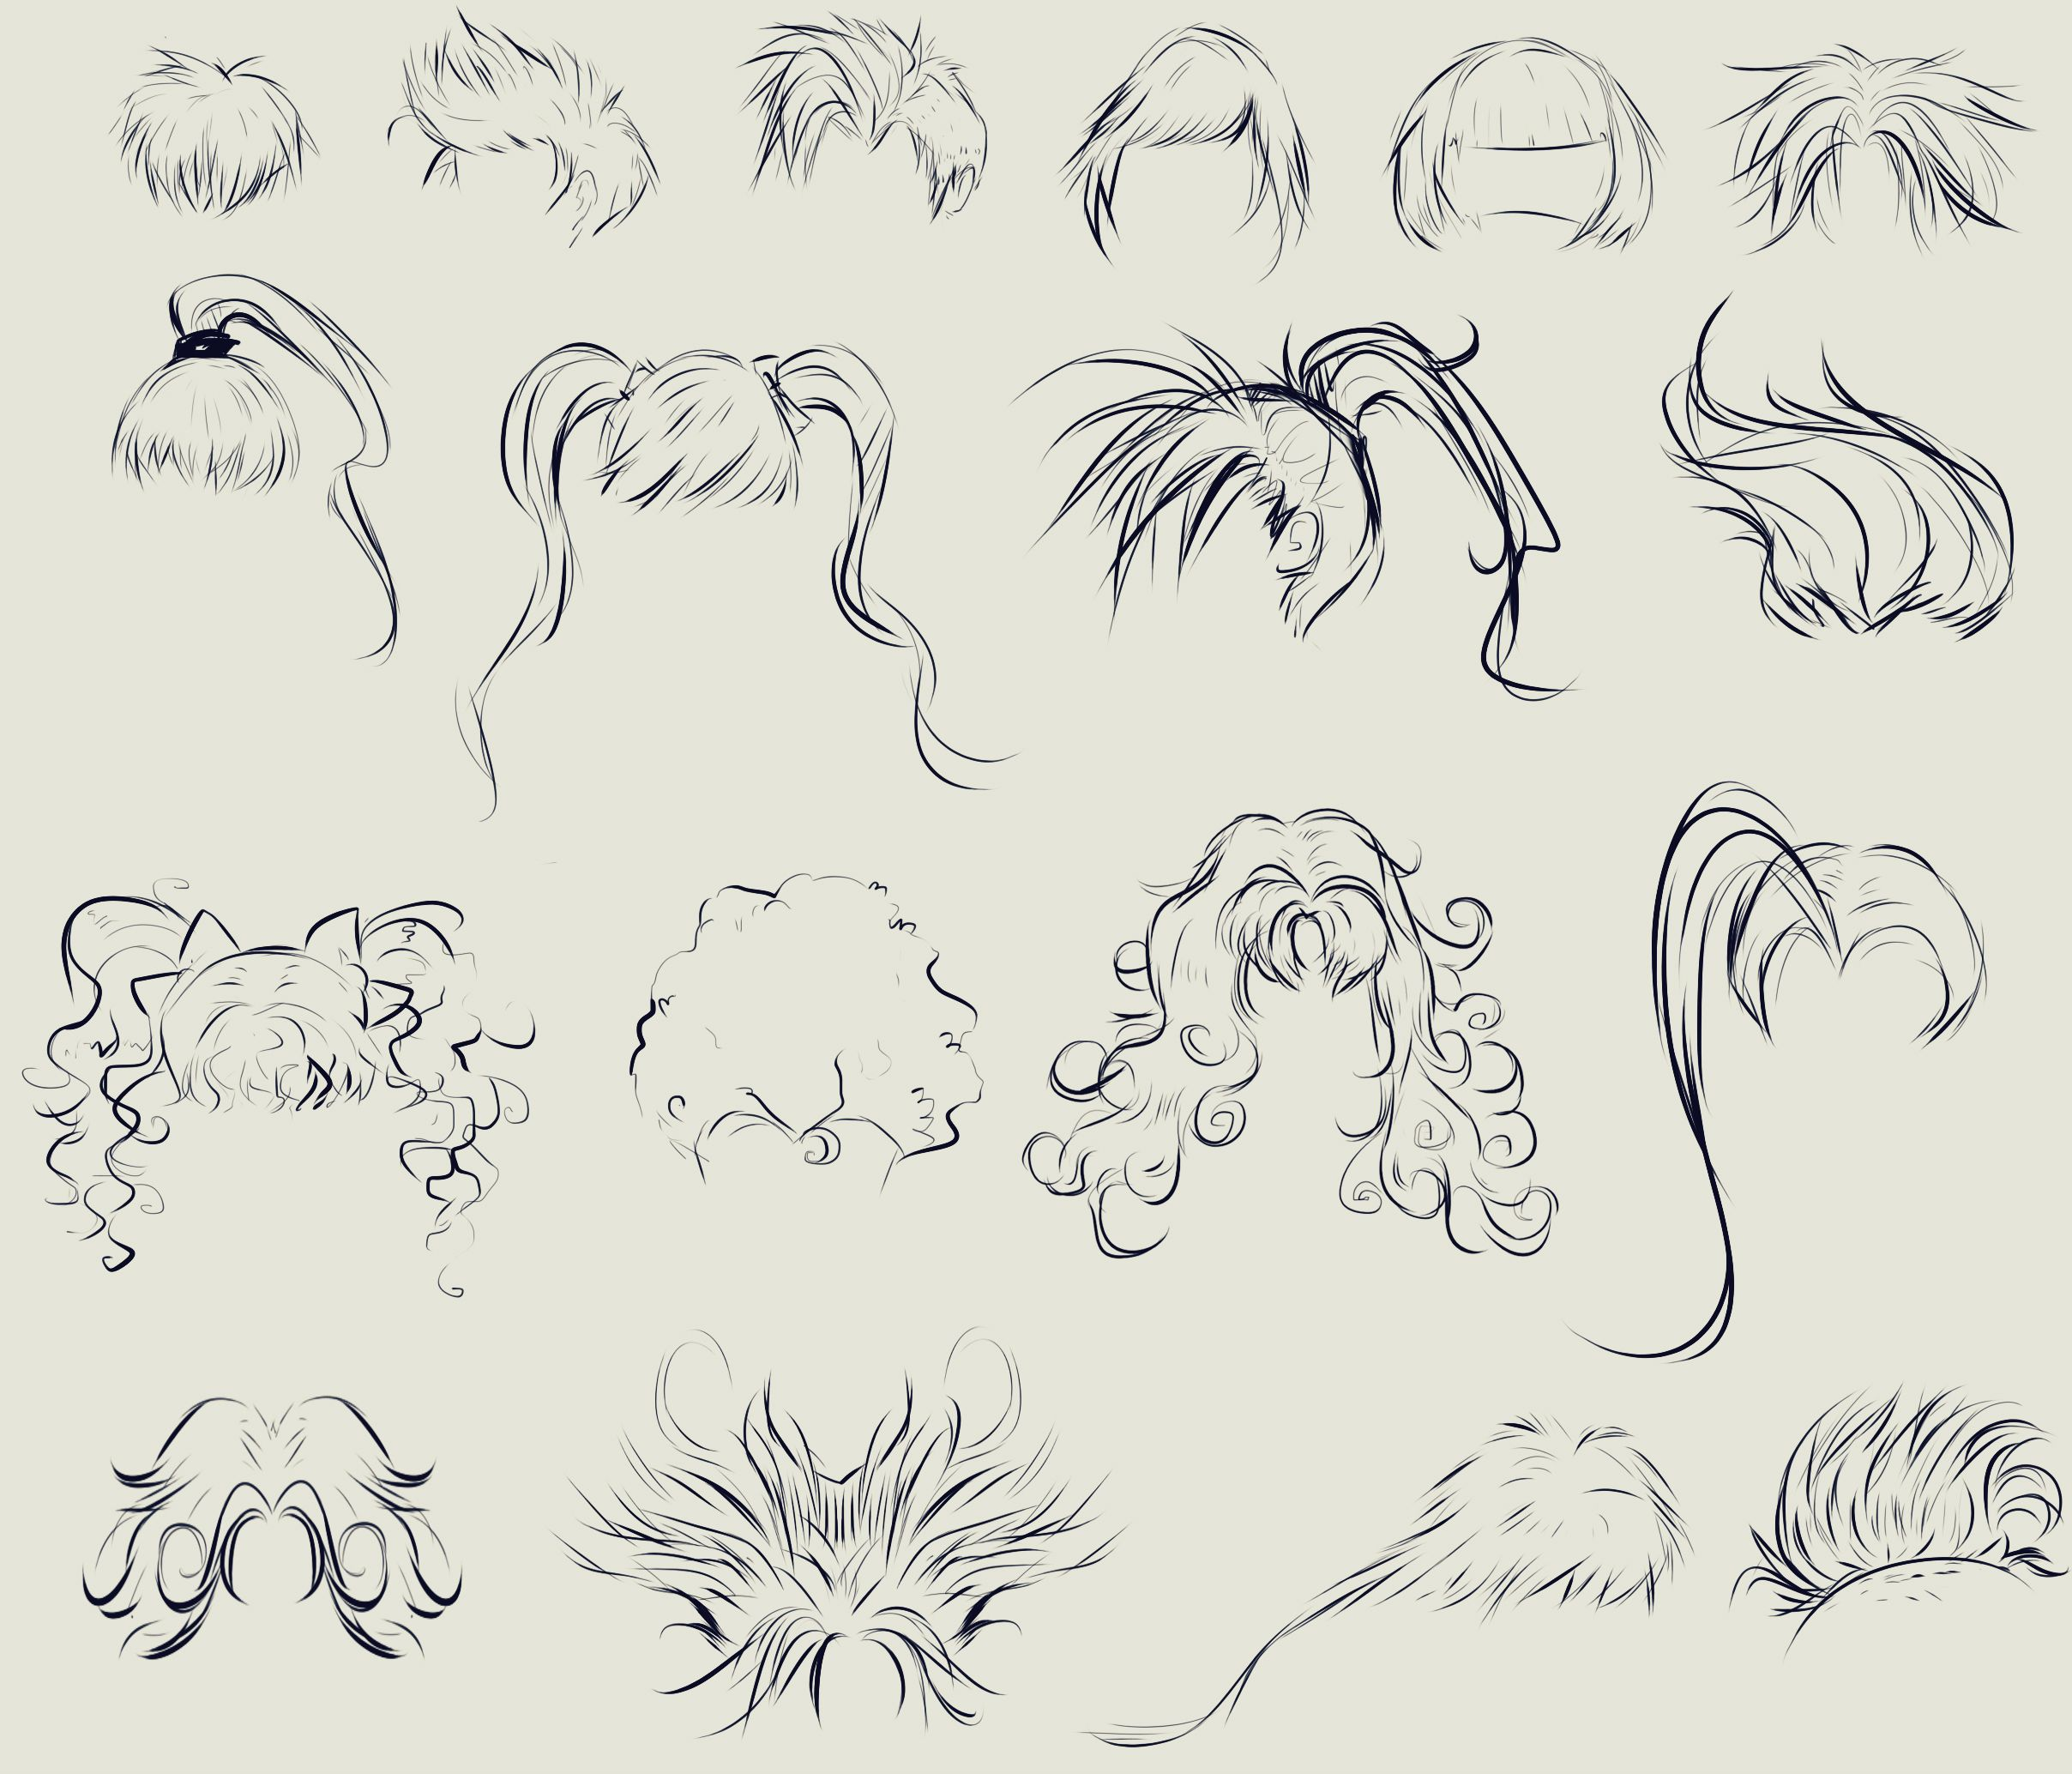 This anime hair reference sheet by ryky is all you need to